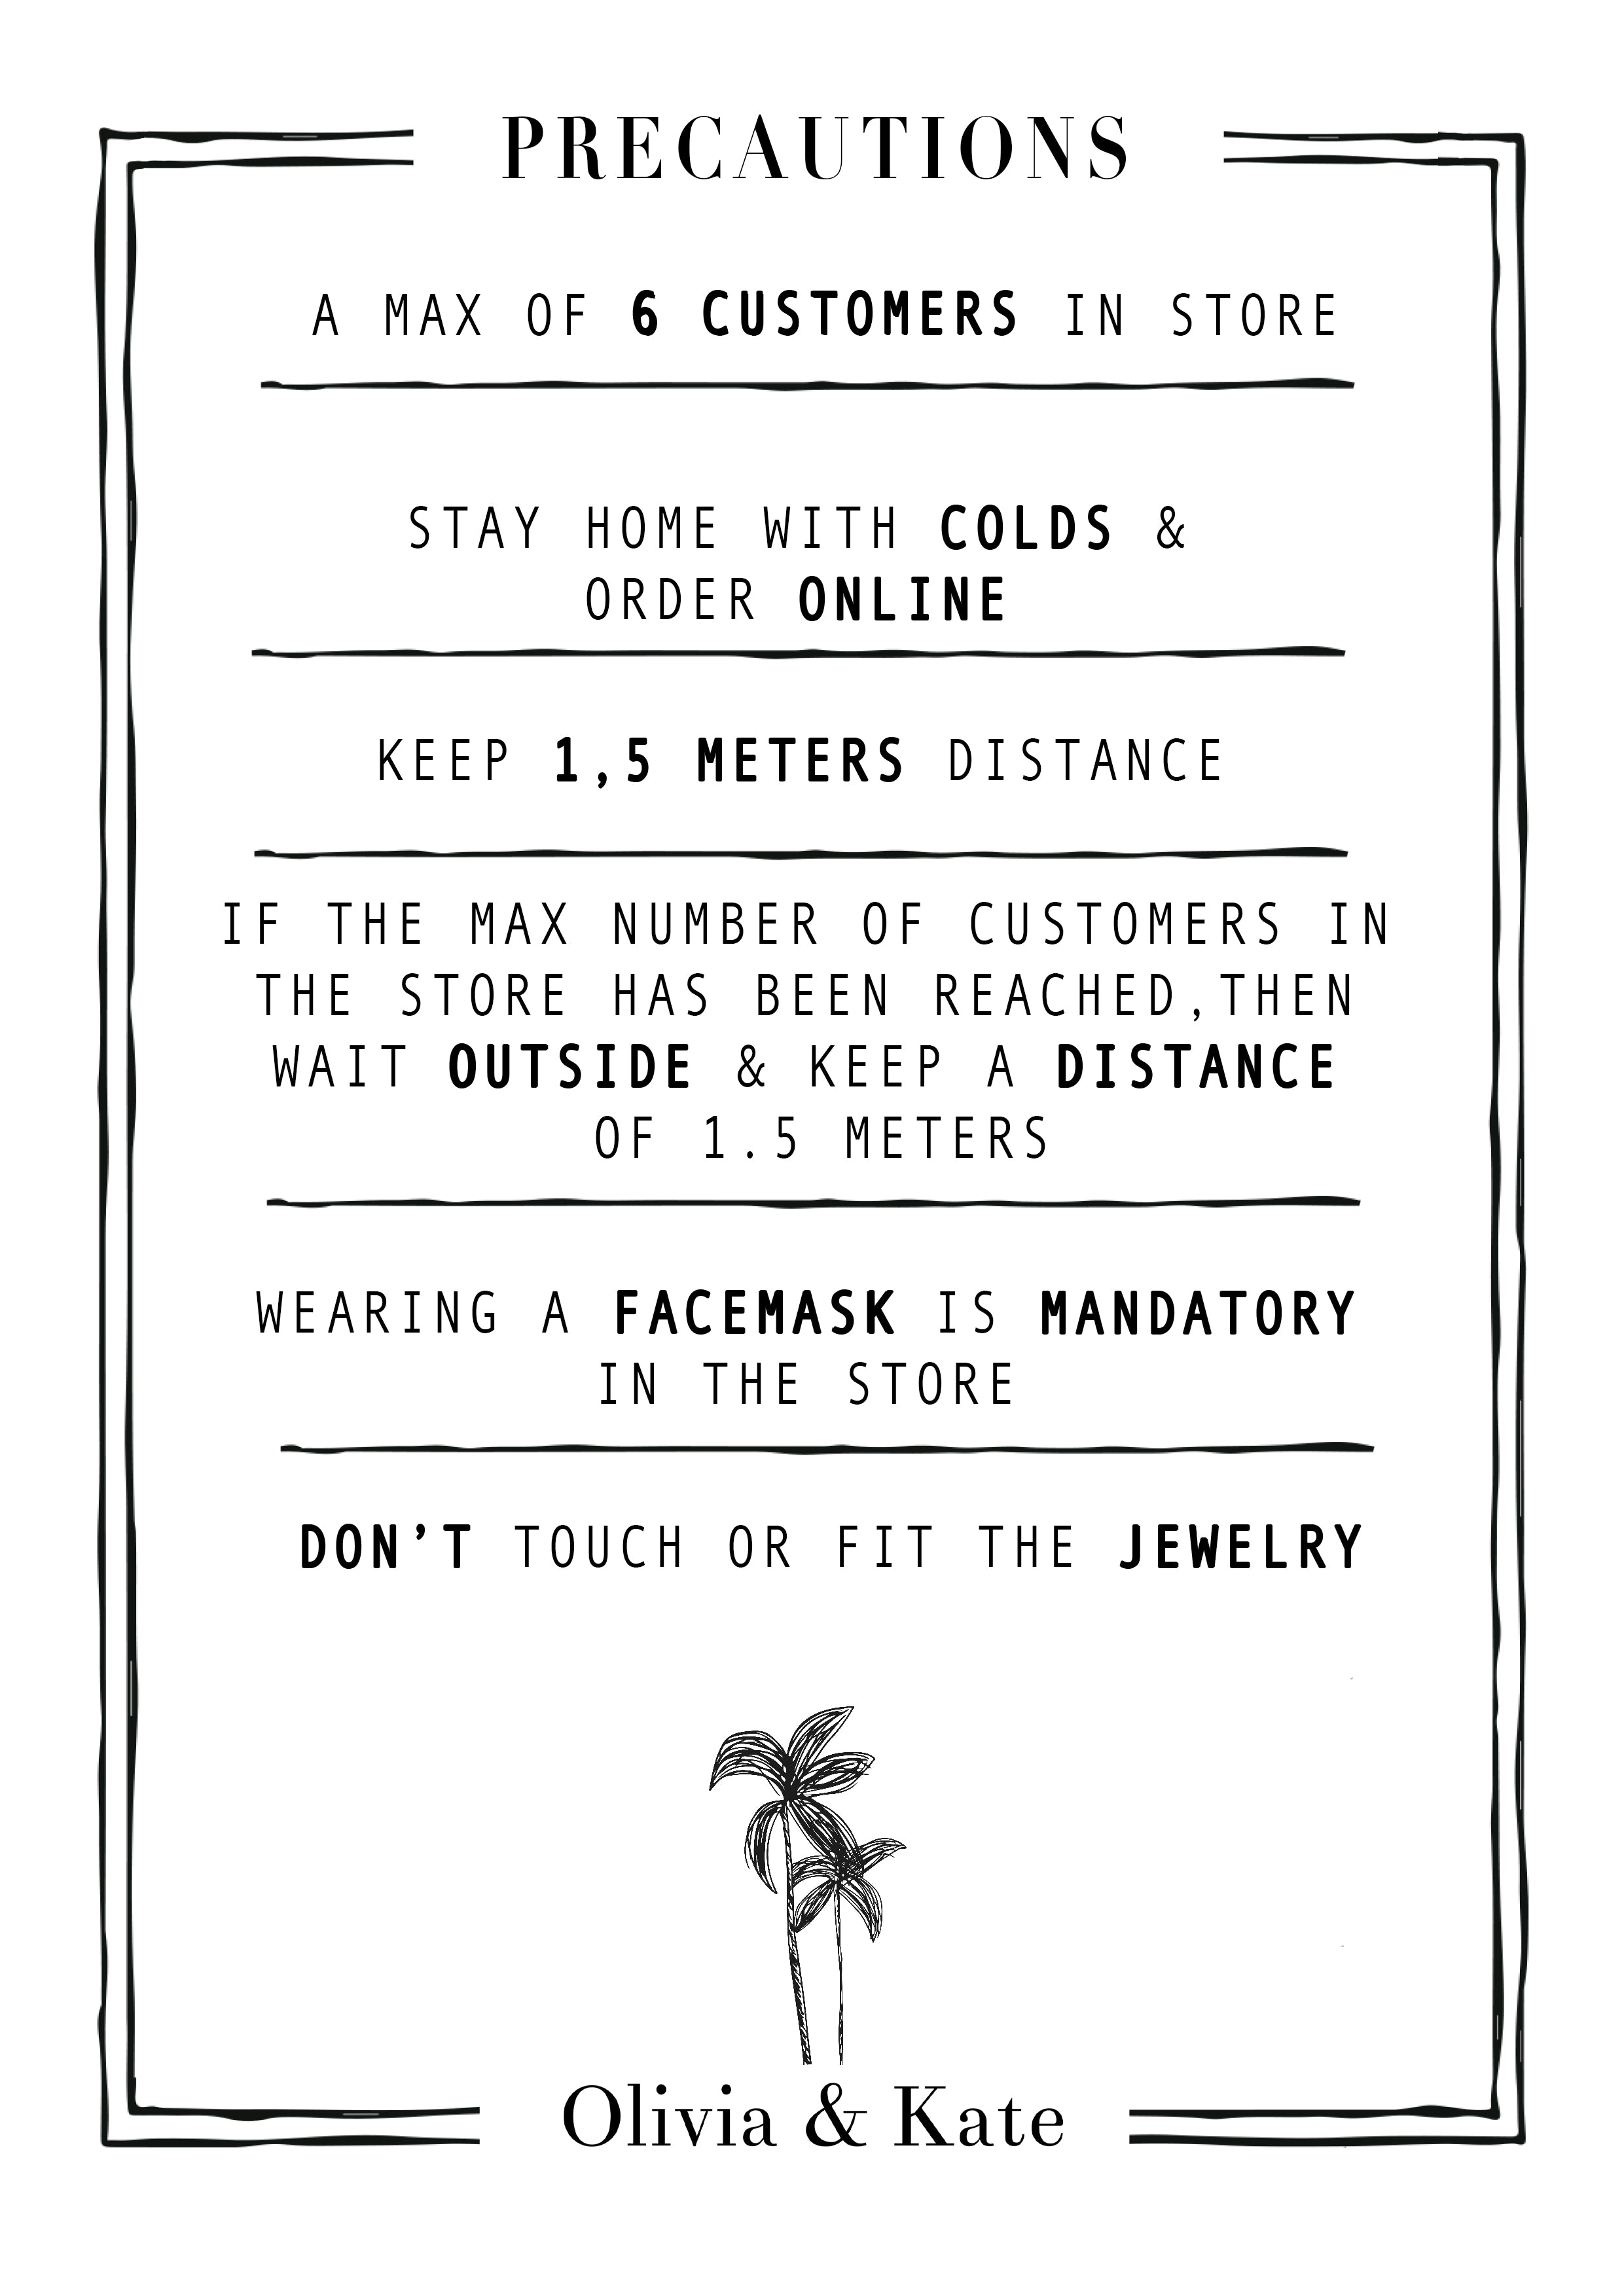 RULES-STORE